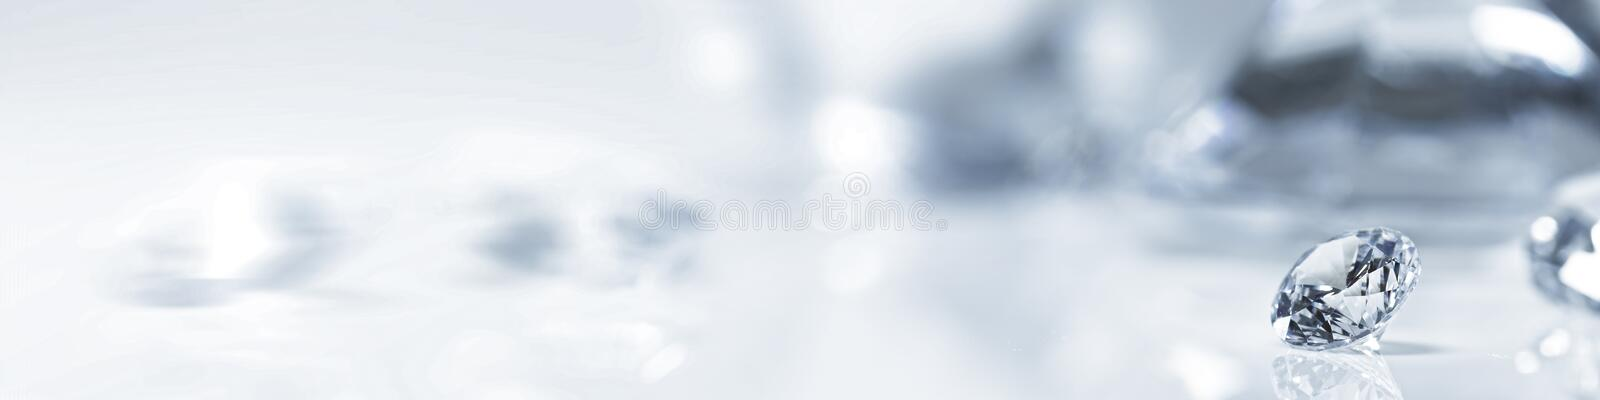 Still with expensive diamonds in front of a white background. Panorama still with expensive cut diamonds in front of a white background, reflections on the royalty free stock photography